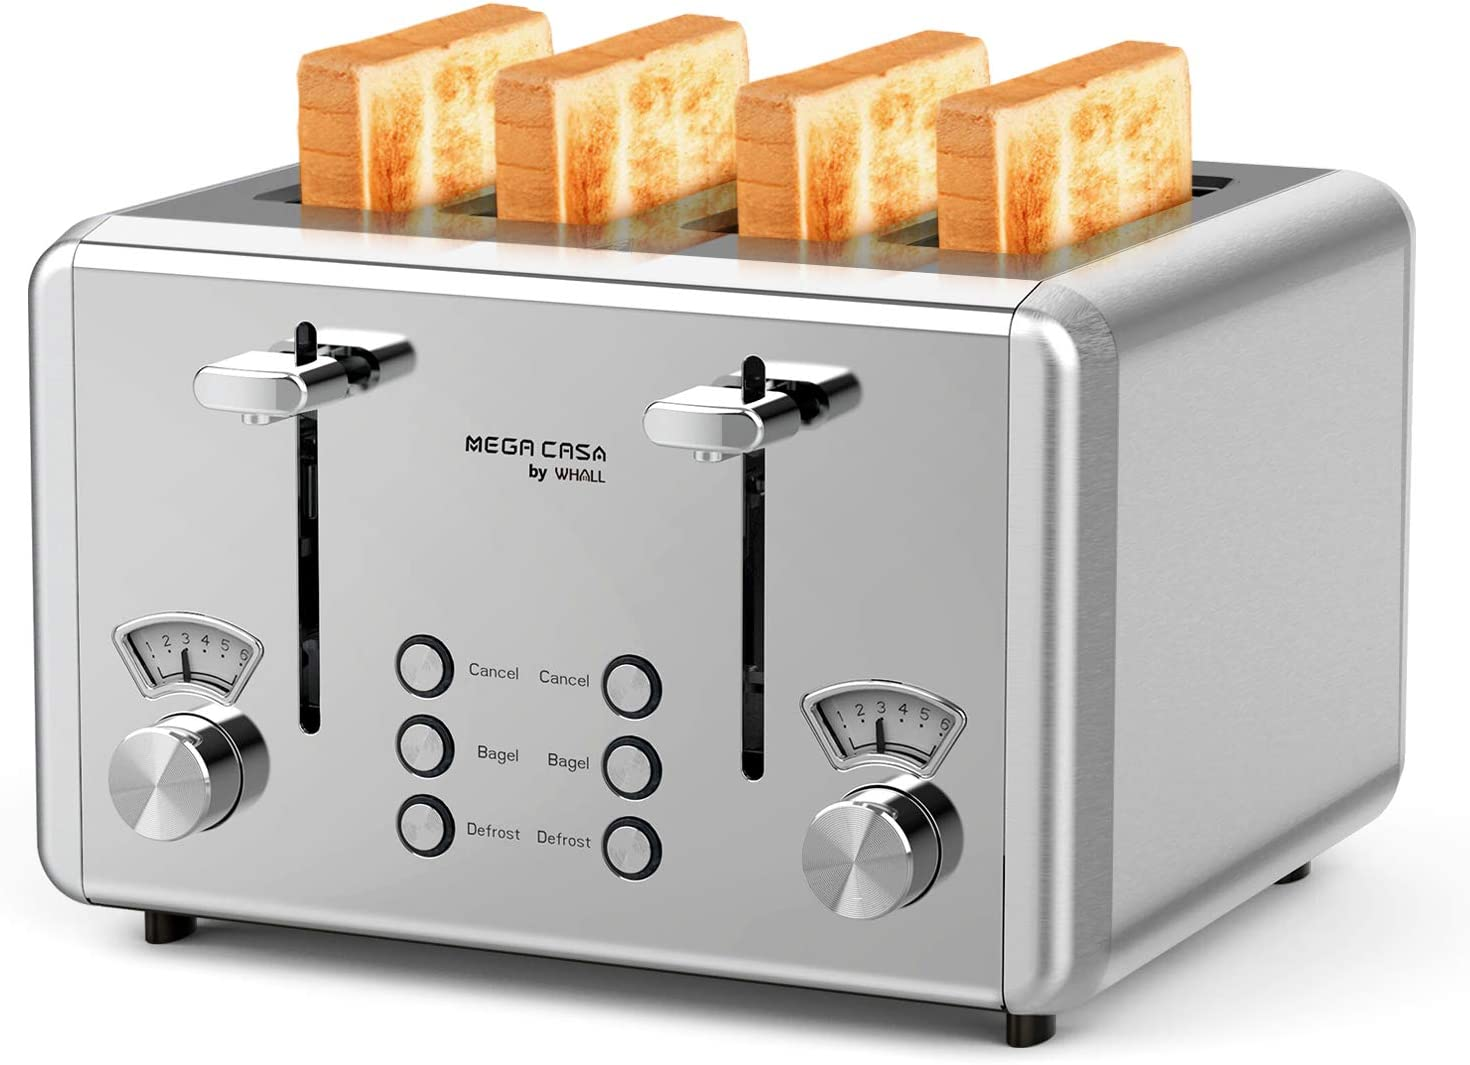 Whall Stainless Steel 4 Slice Bagel Toaster